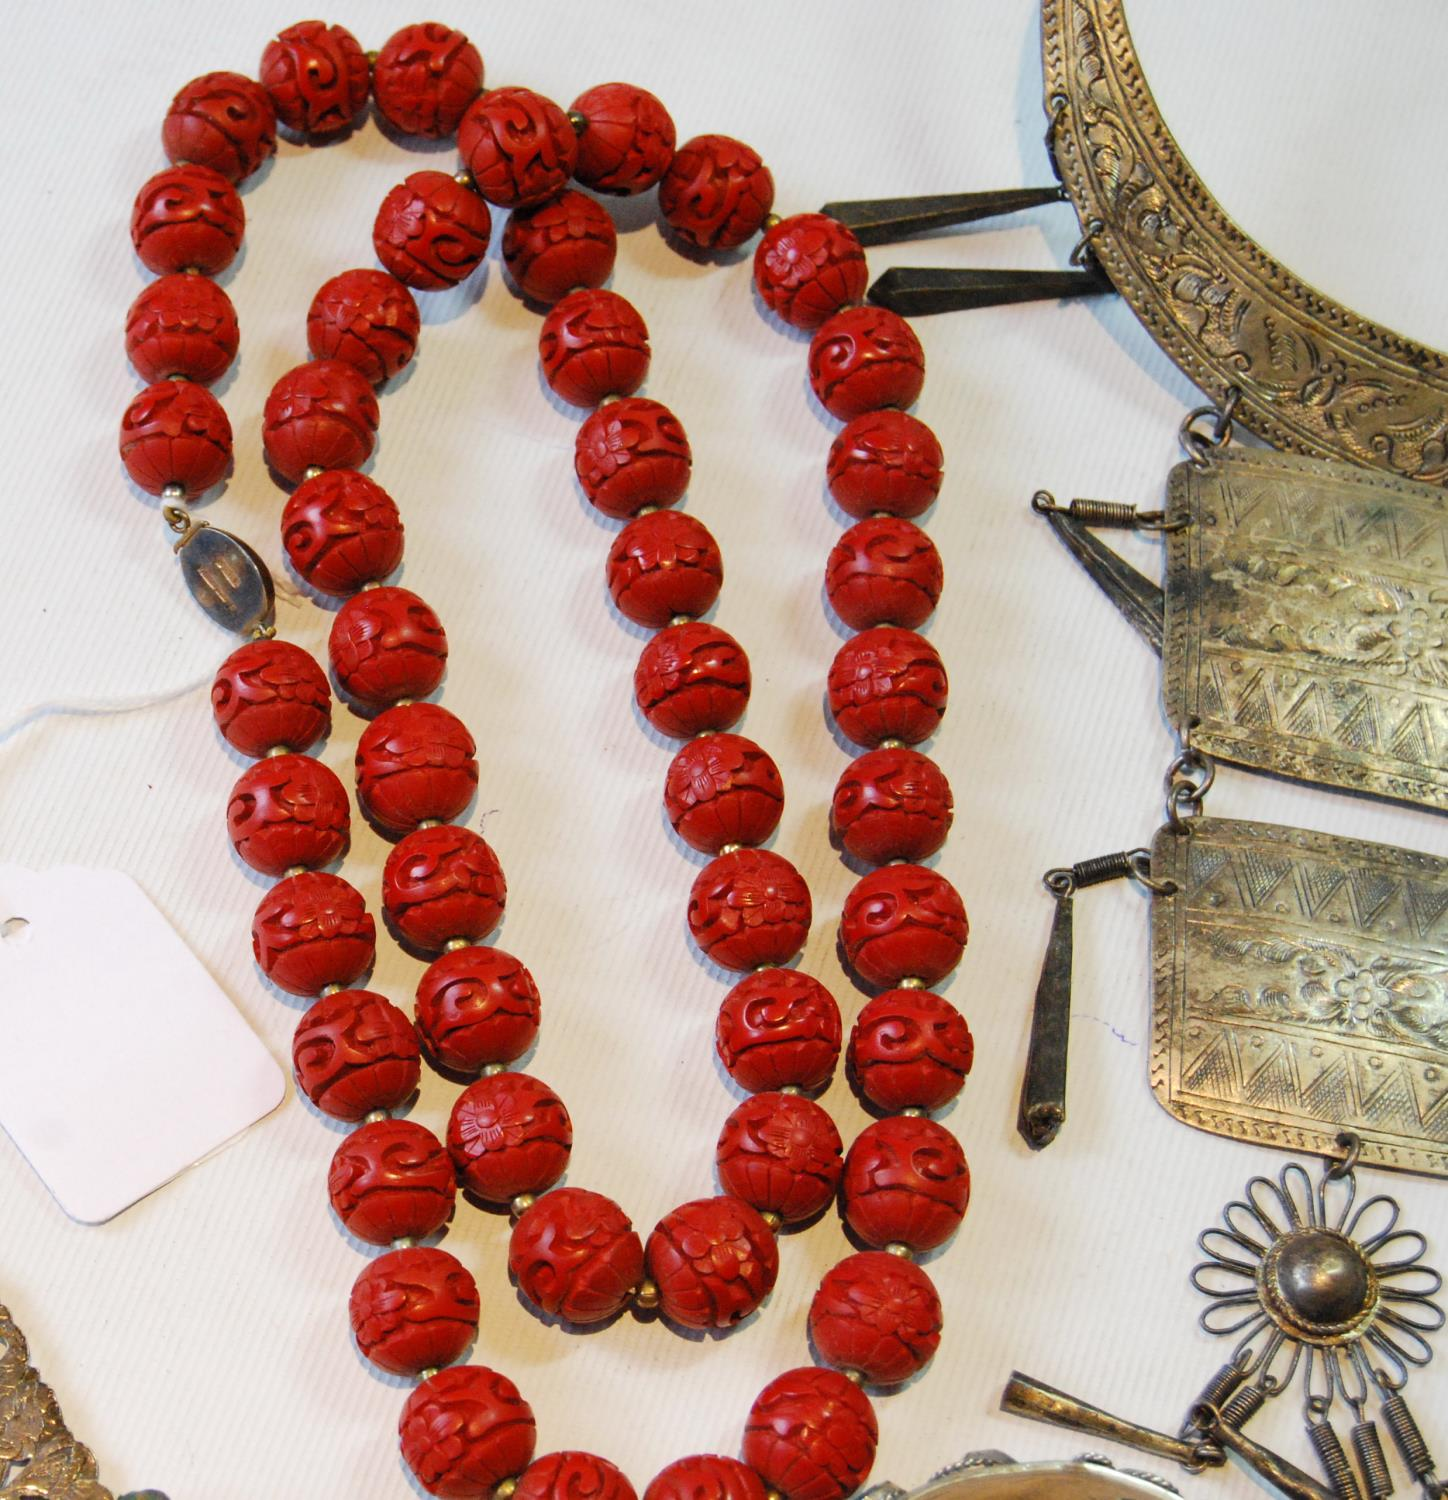 Coromandel lacquer-style necklace on Chinese silver gilt snap and a quantity of beads and costume - Image 2 of 5